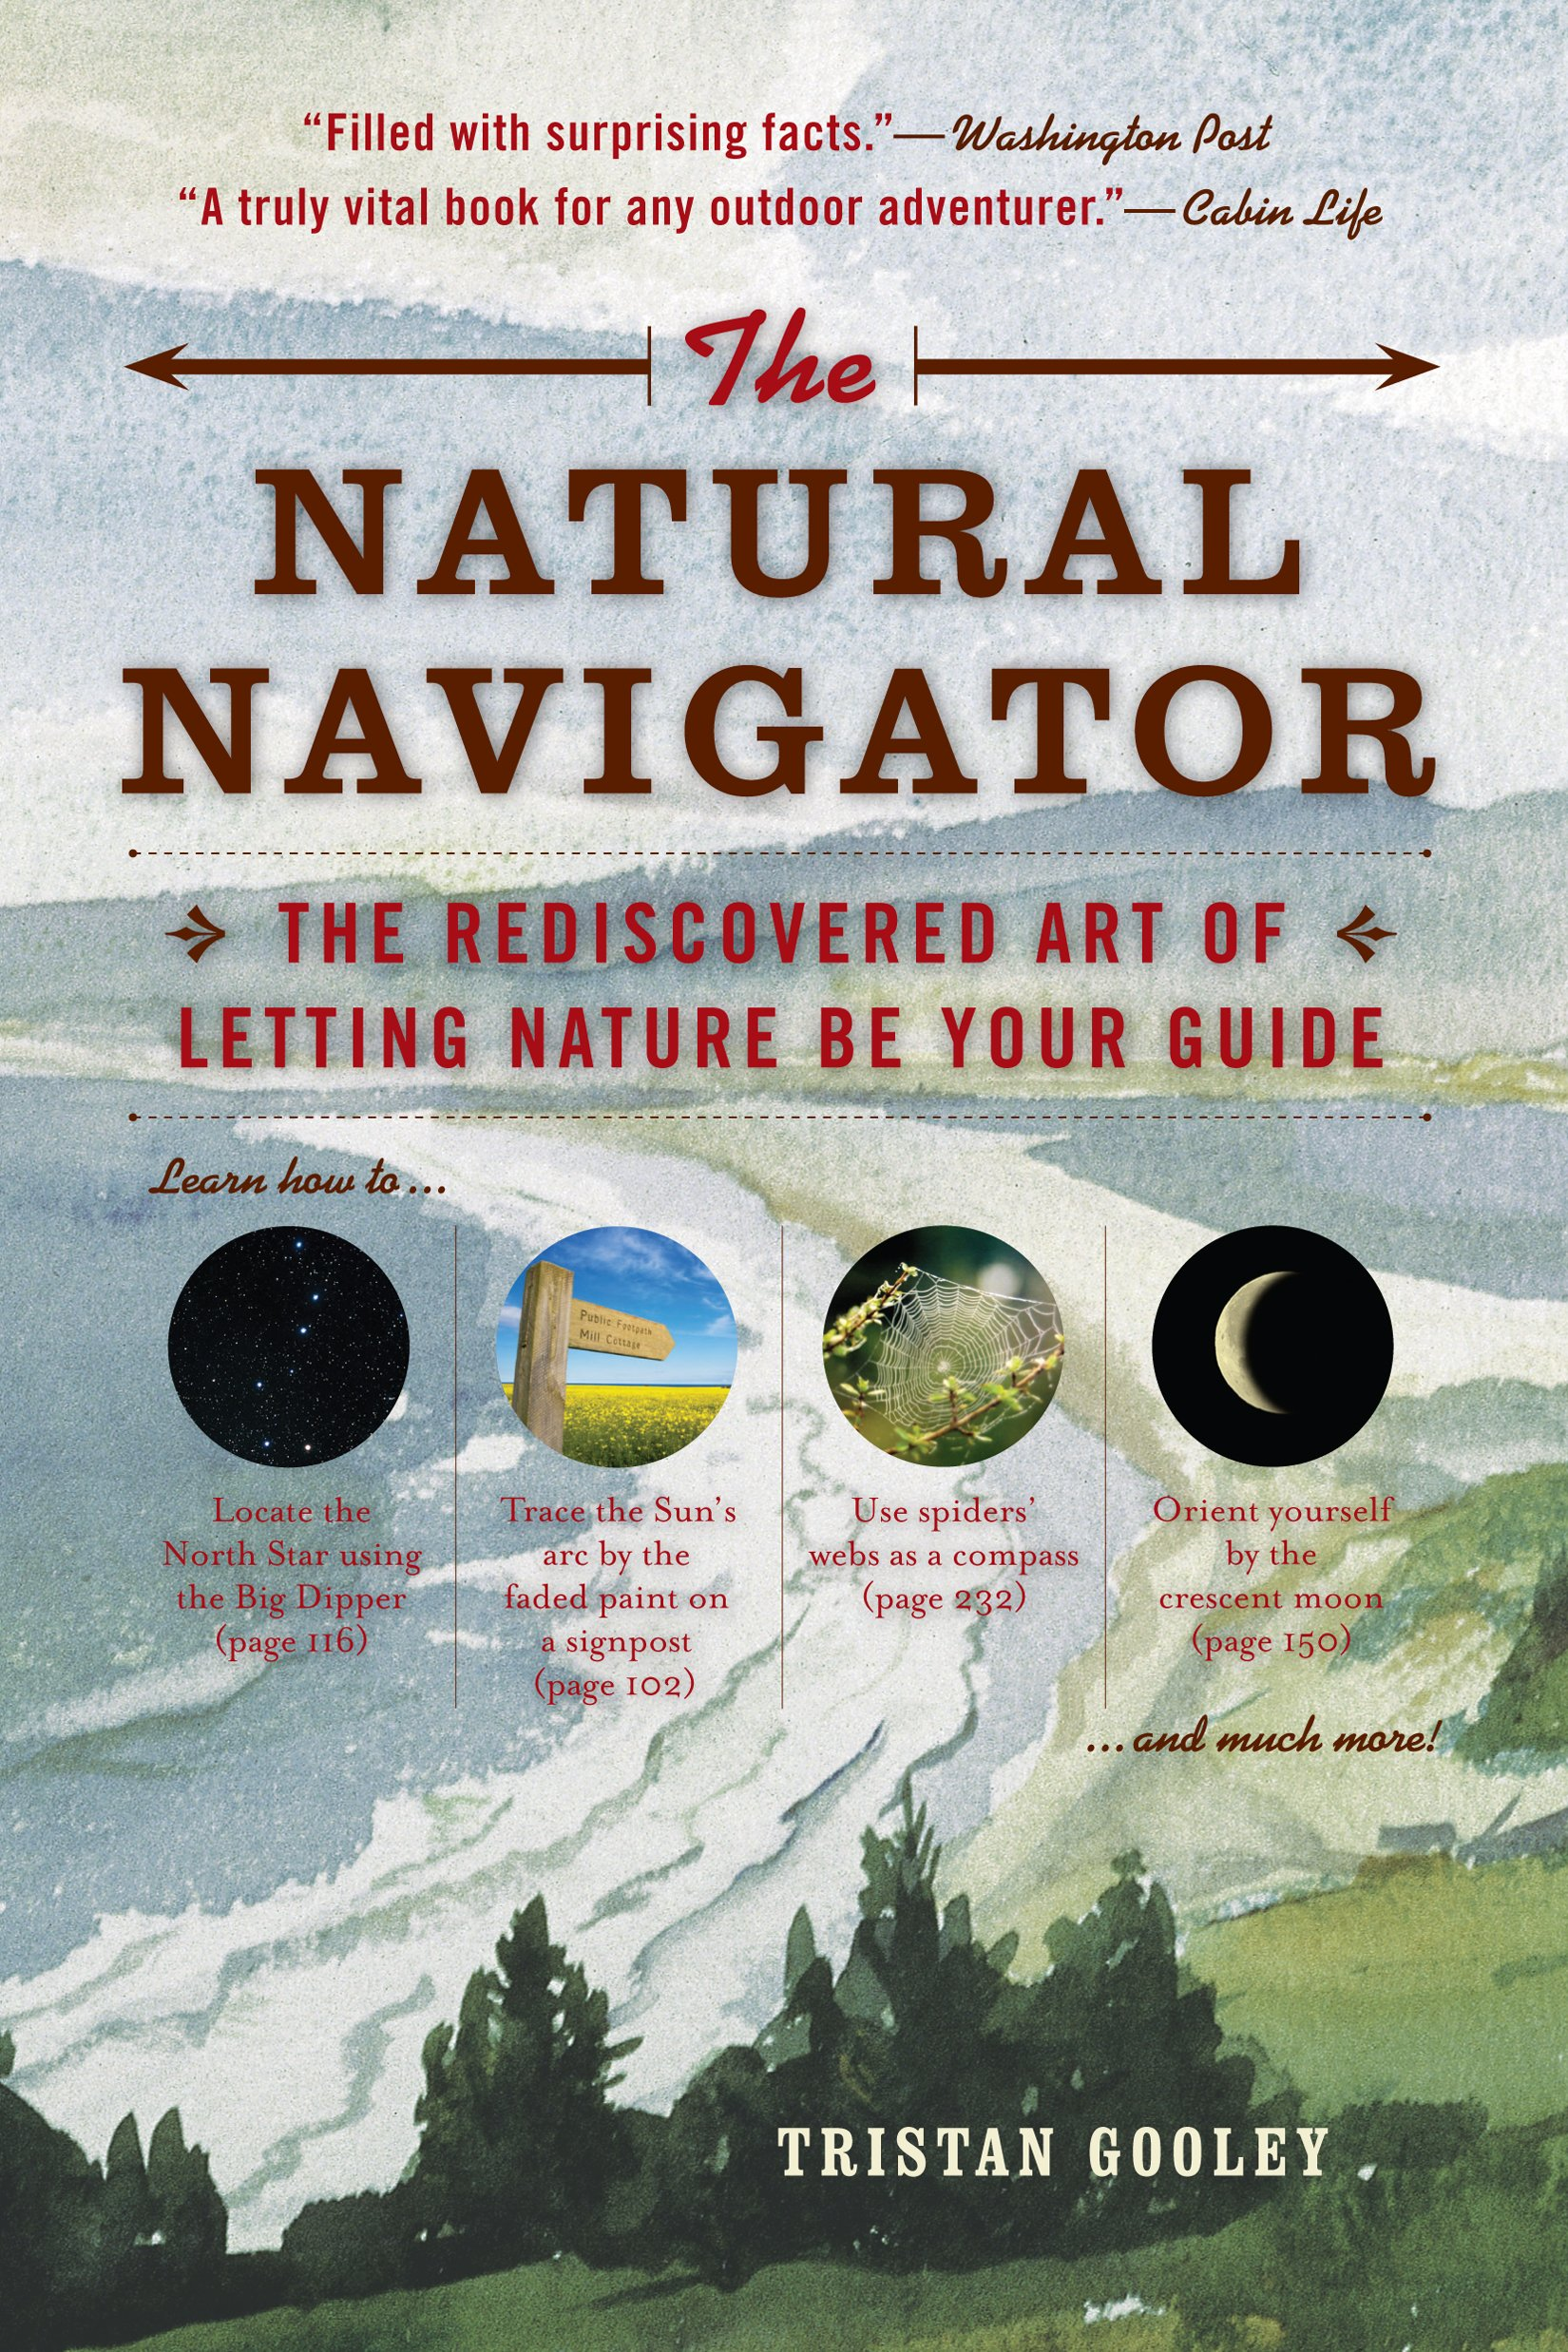 natural navigator - we are wildness favorites - nature book - rewild your life - wilderness skills - mindfulness